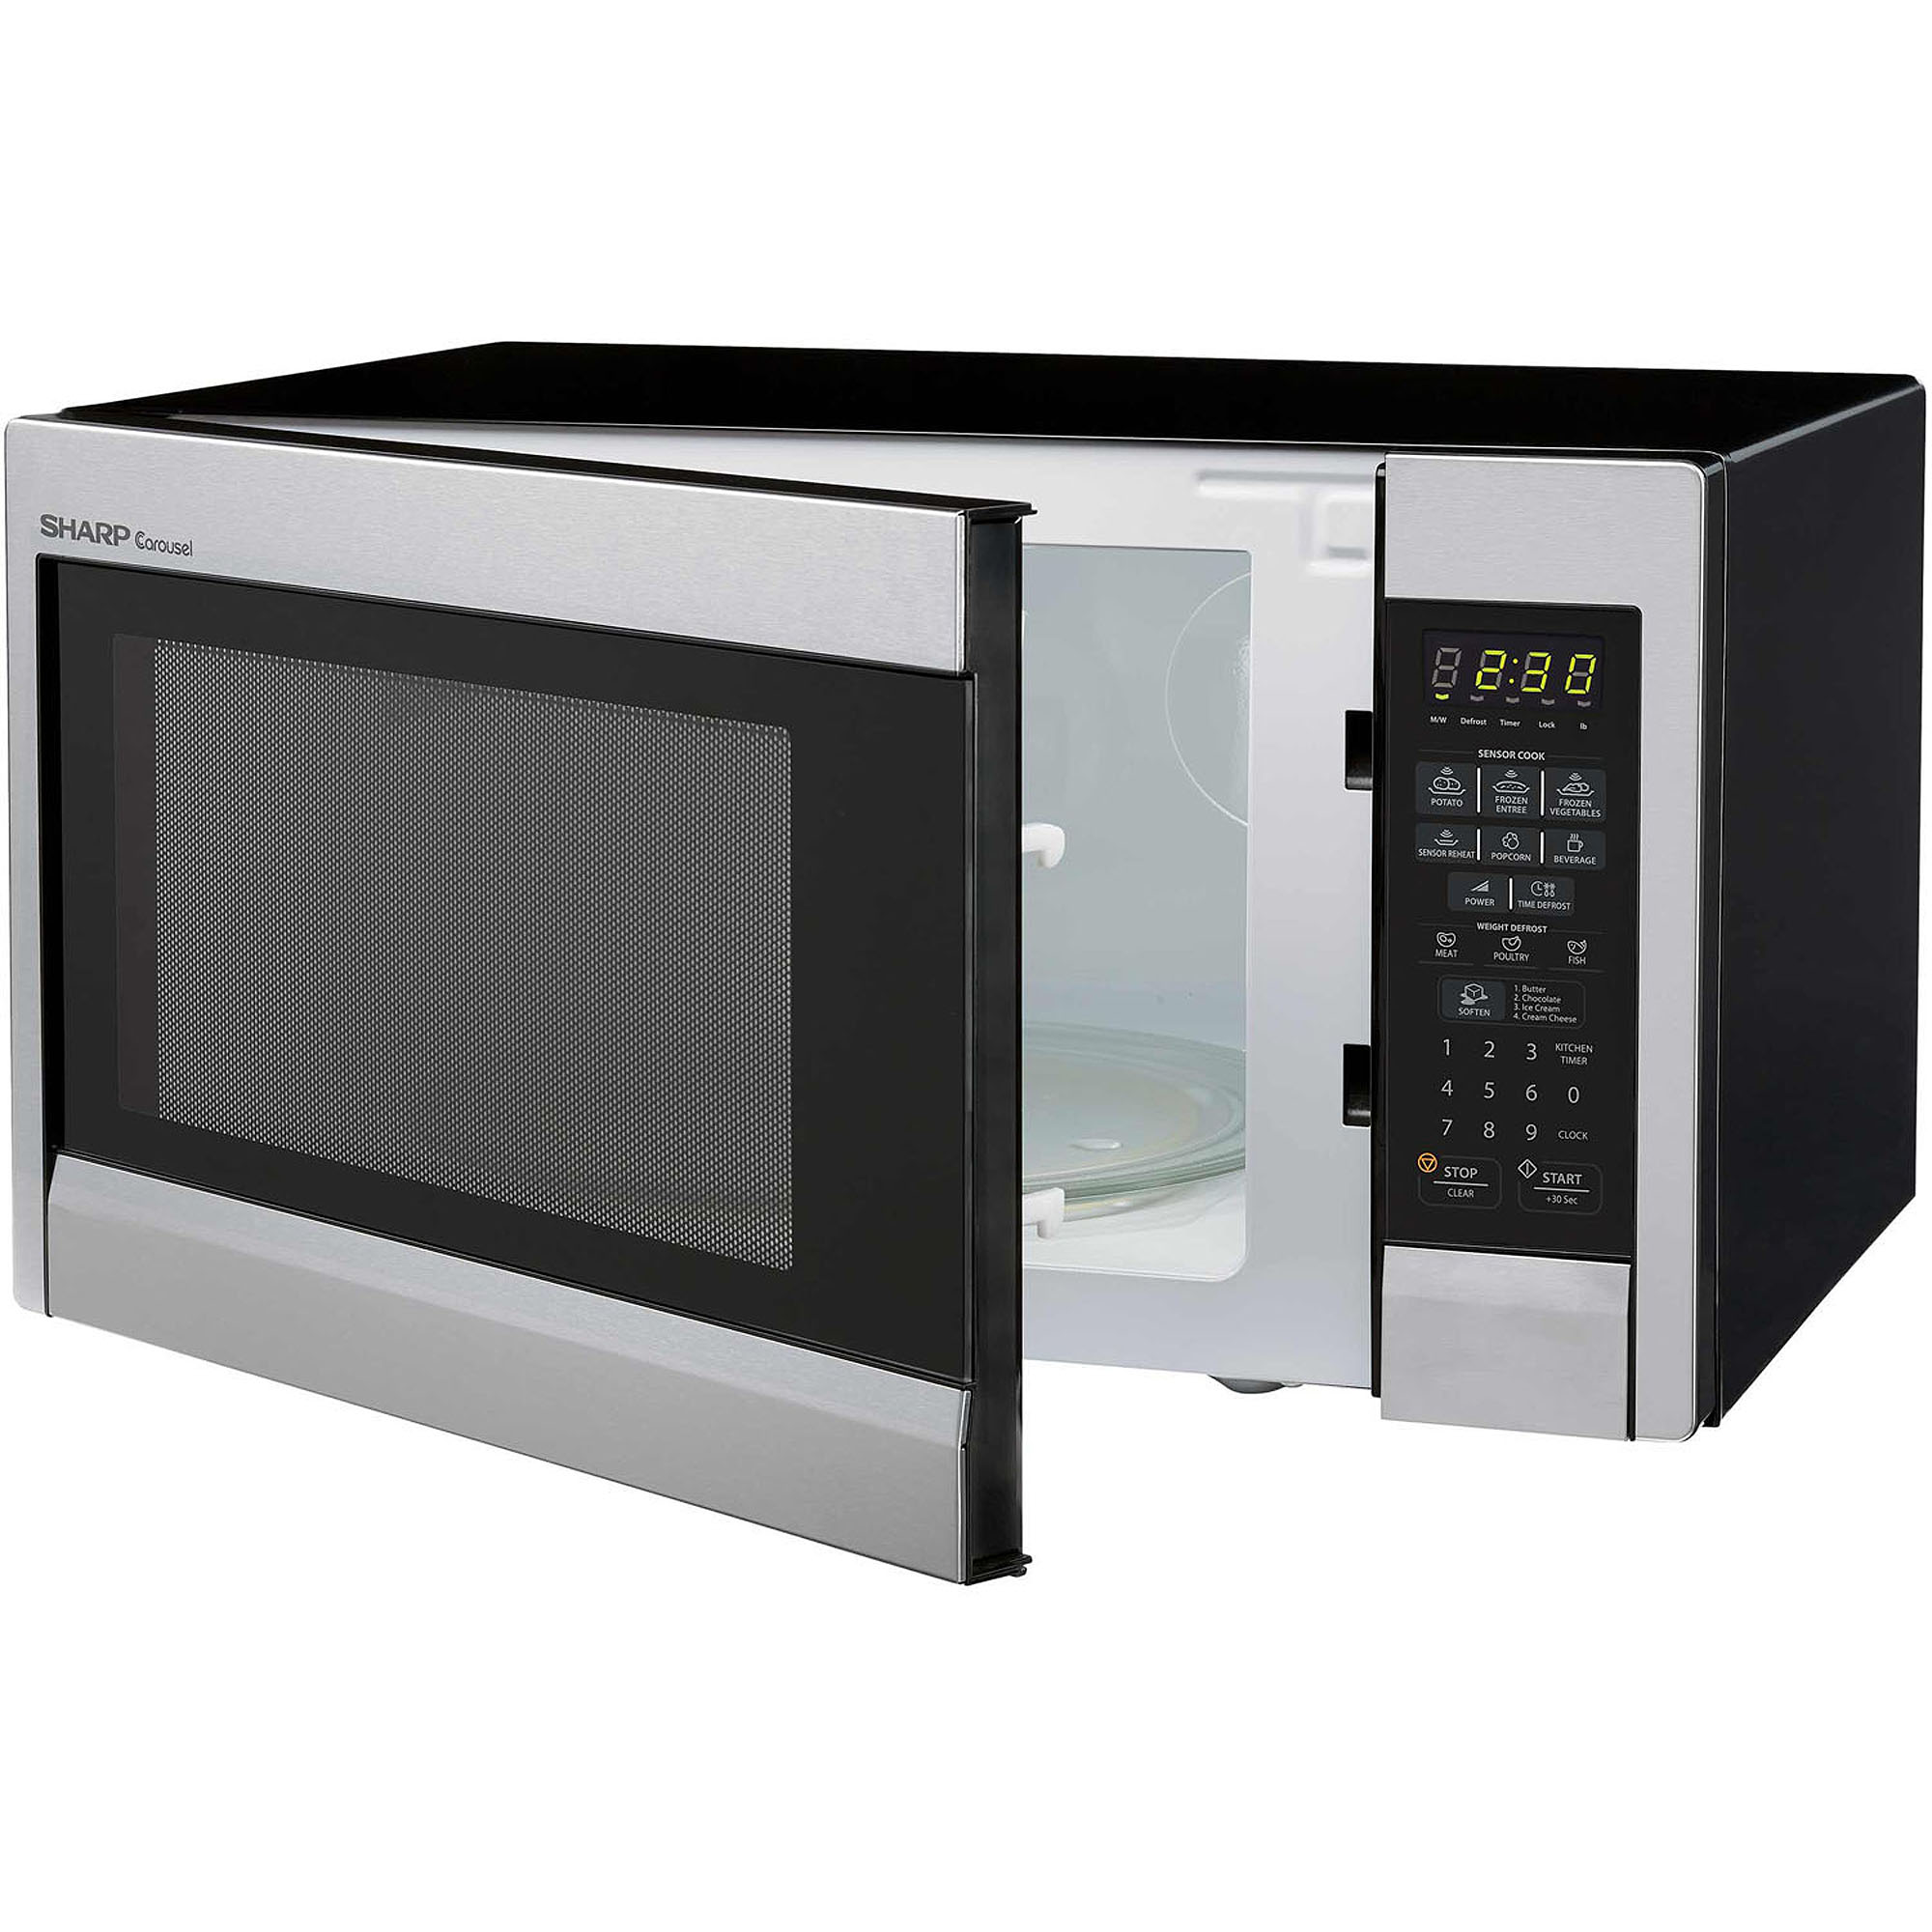 Sharp R451zs Carousel Countertop Microwave Oven 1 3 Cu Ft 1000w Stainless Steel